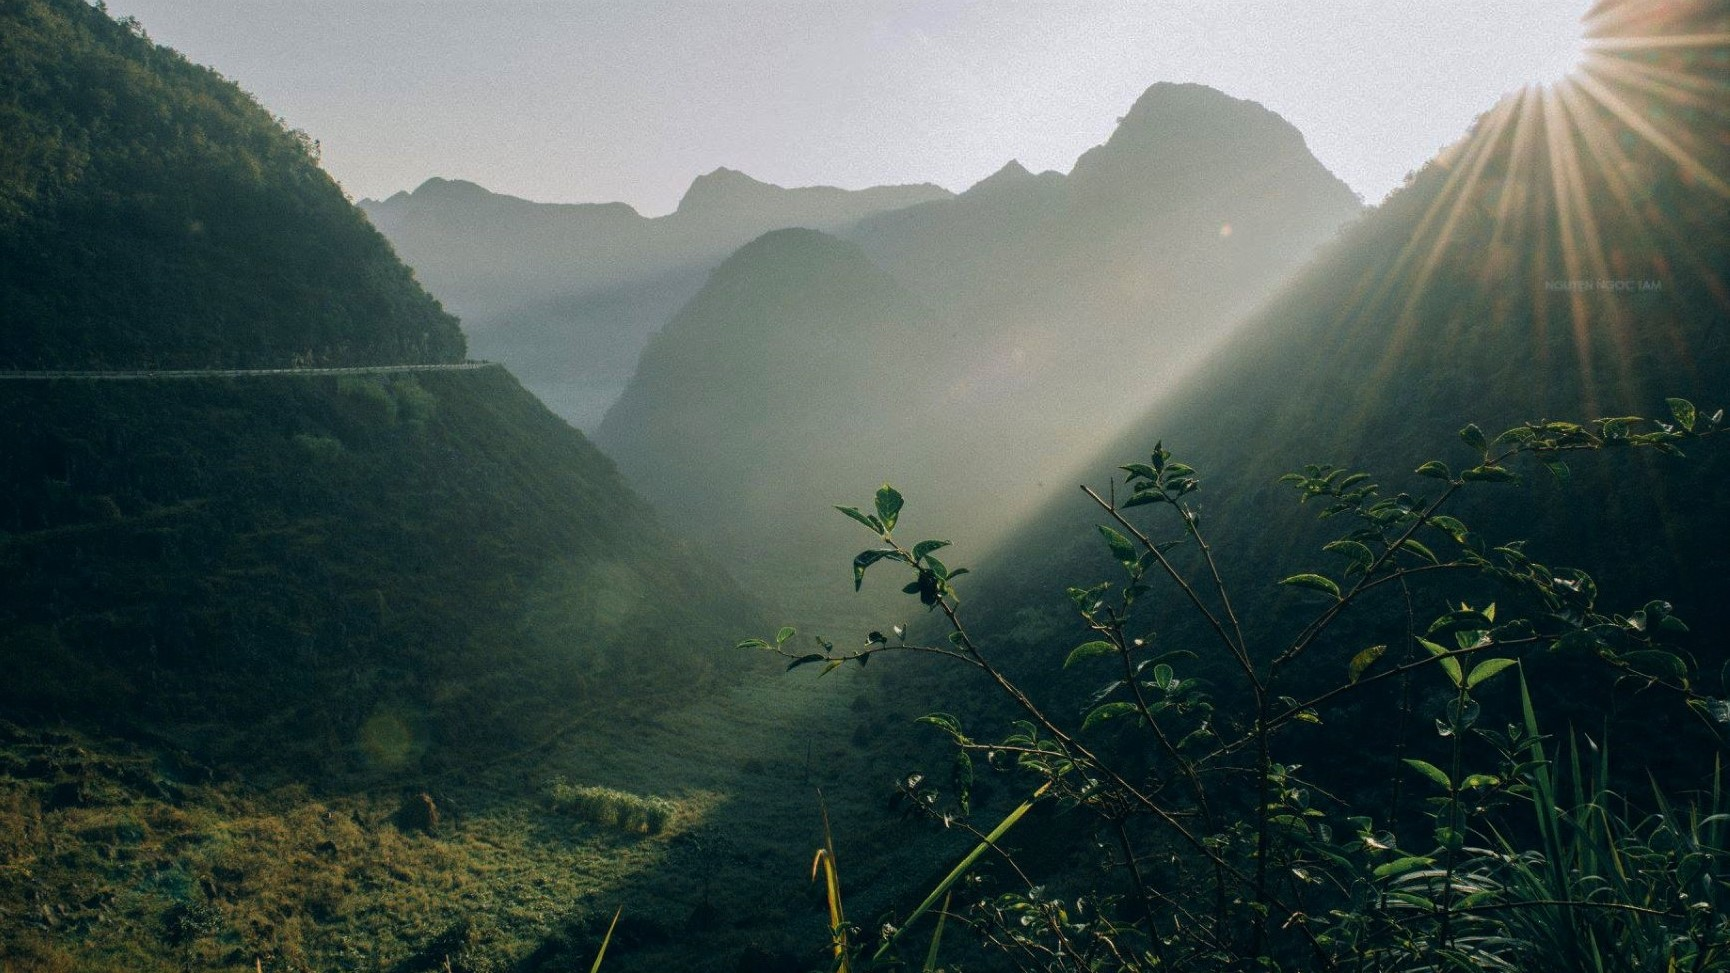 A JOURNEY OF HAPPINESS - HA GIANG